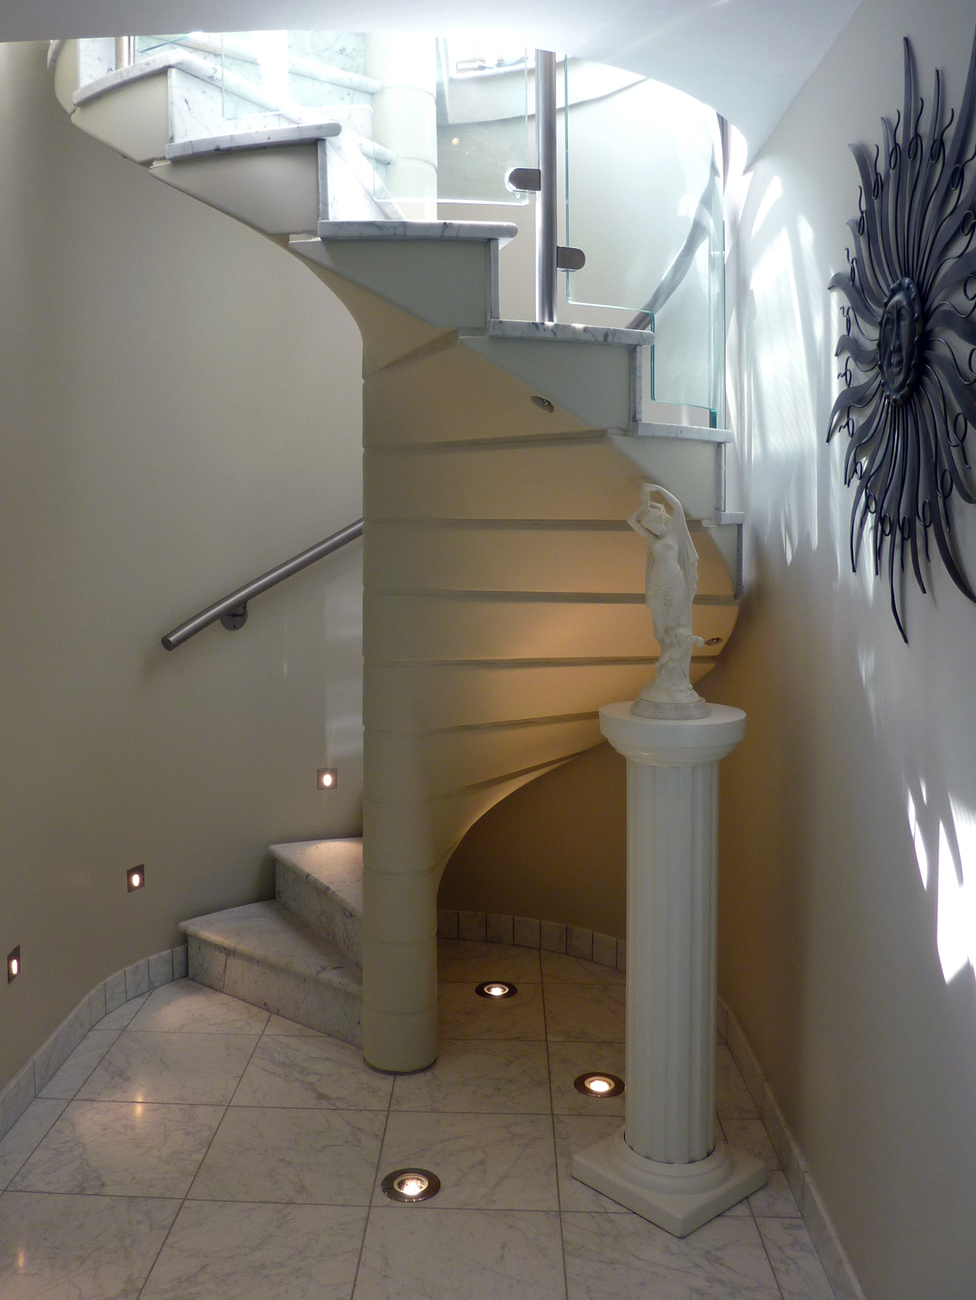 Stone treads with clever lighting to highlight the finer details.